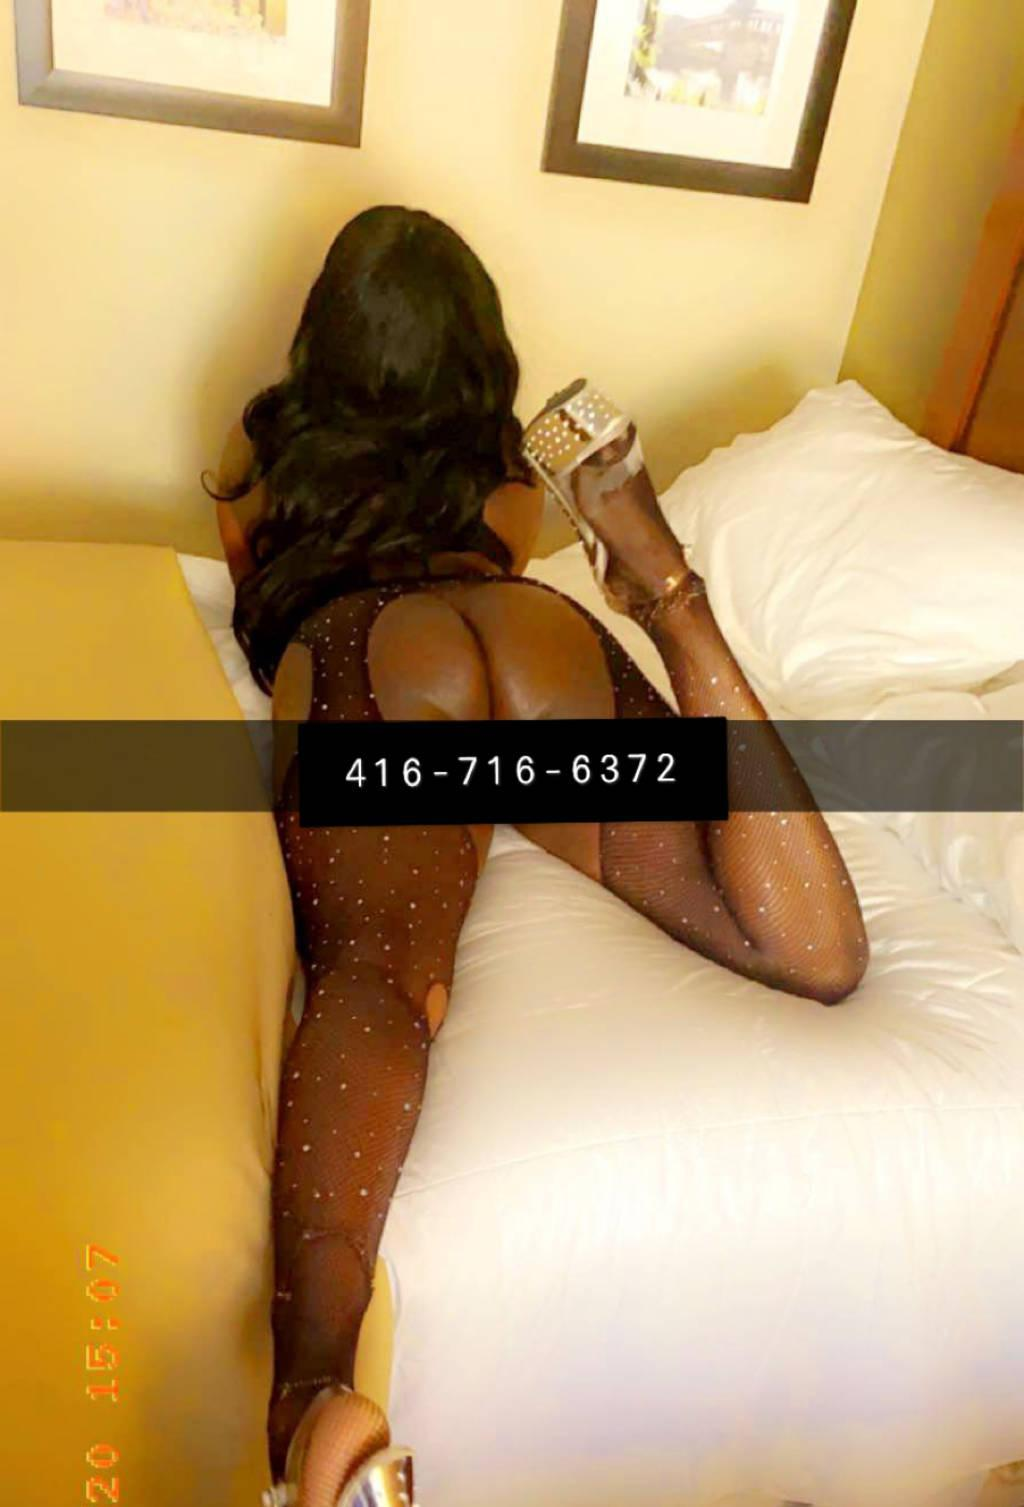 YOUR FAV EBONY PLAYMATE IS BACK DONT BE SHY BOOK ME NOW